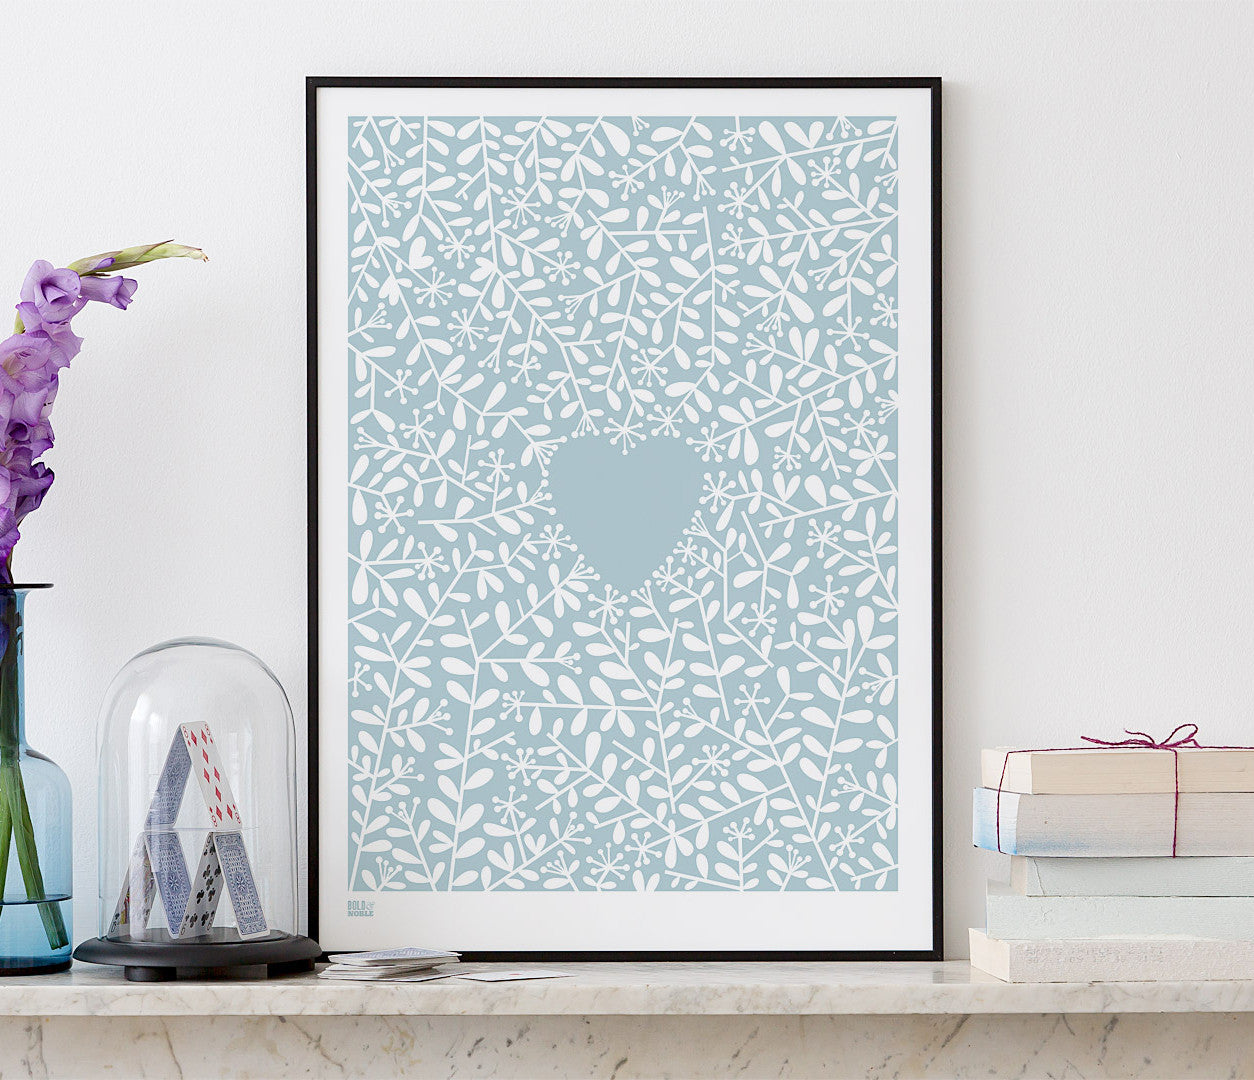 Wall Art Ideas: Economical Screen Prints, Love Grows Print in Duck Egg Blue